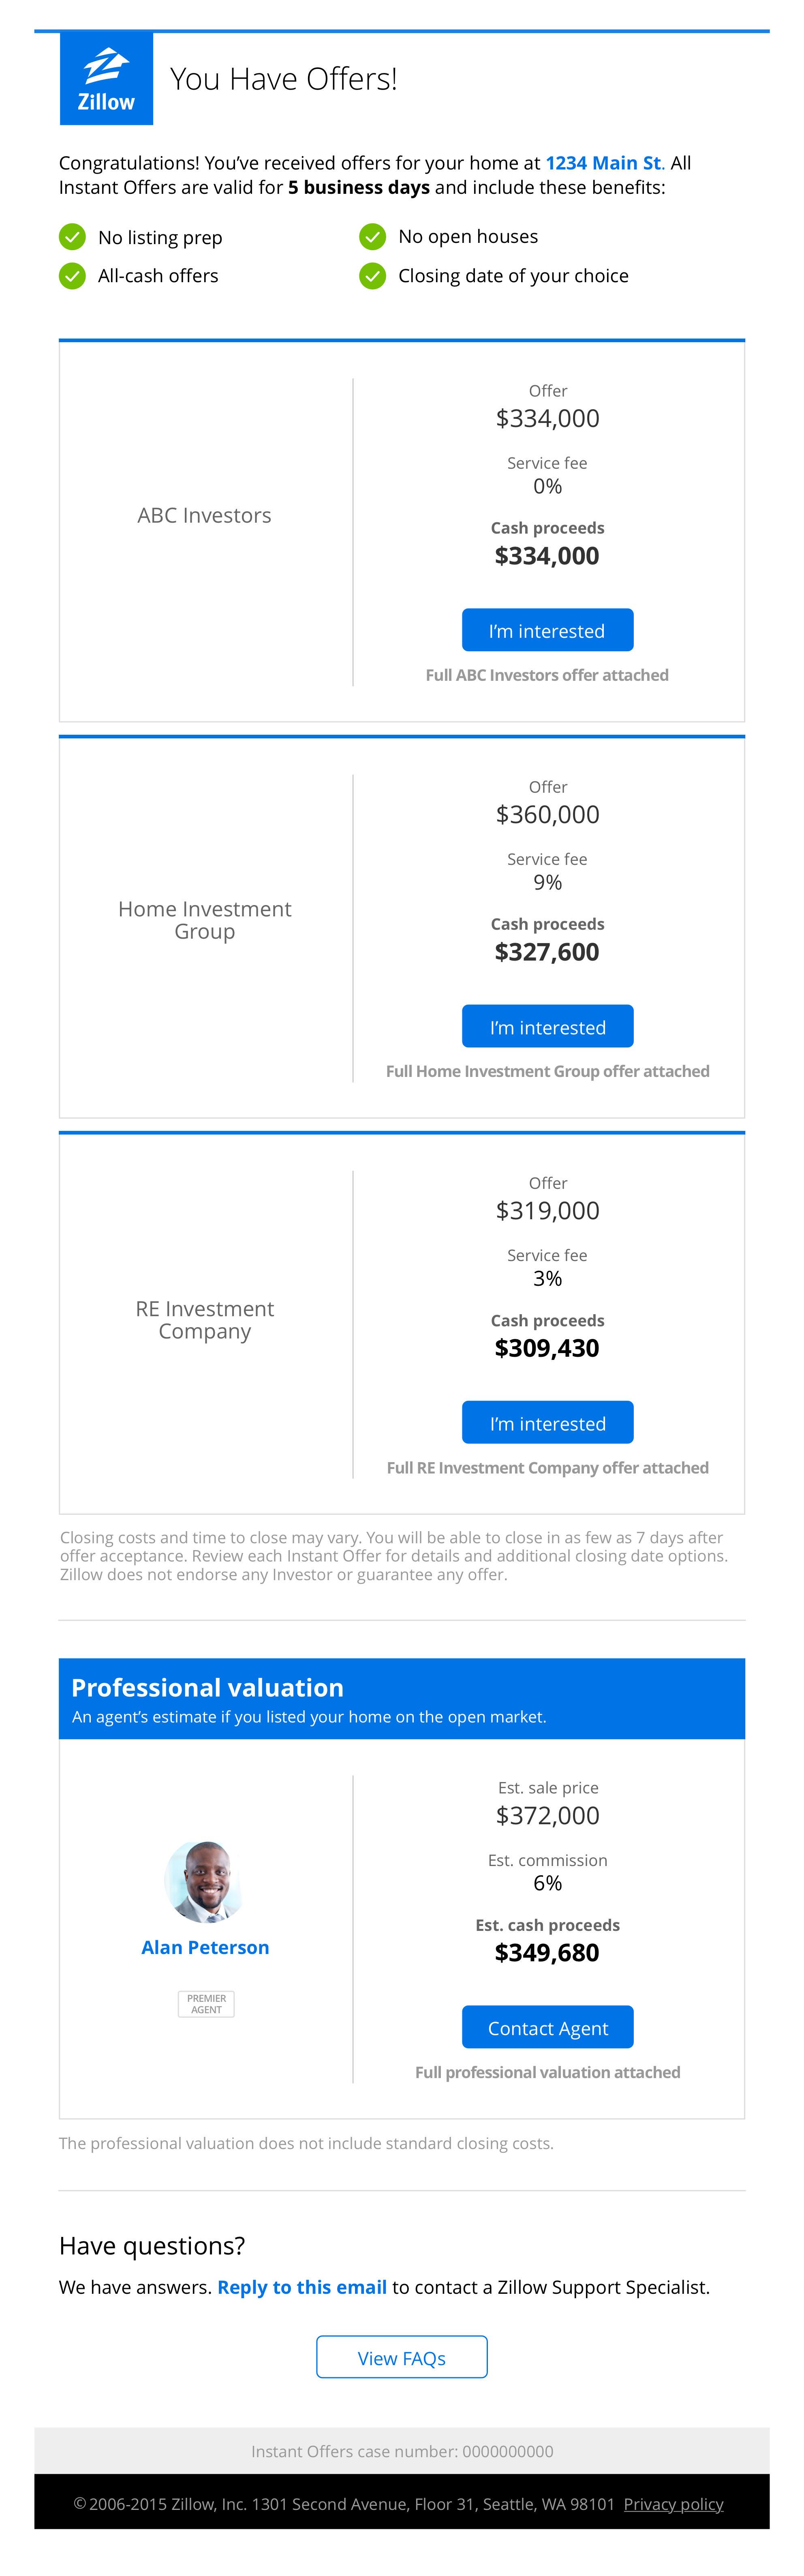 """Gamechanger: Zillow getting into home selling business with """"instant offers"""""""